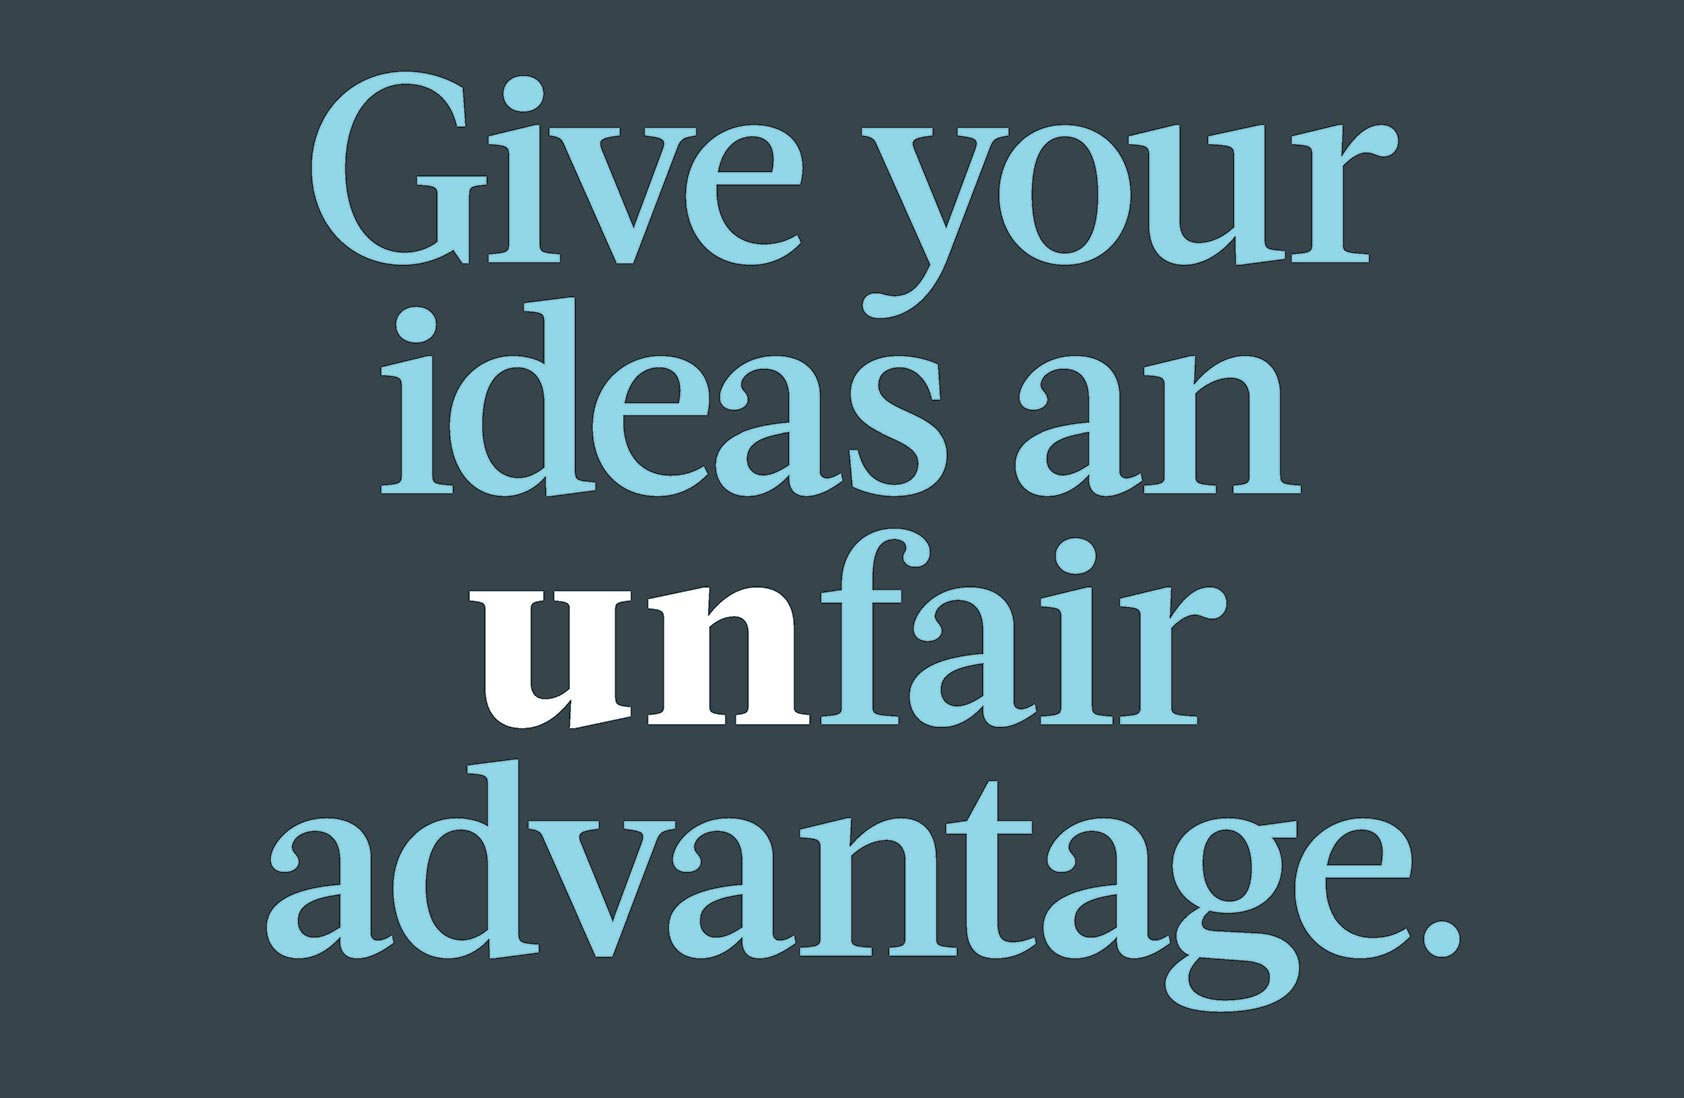 Give your ideas an unfair advantage